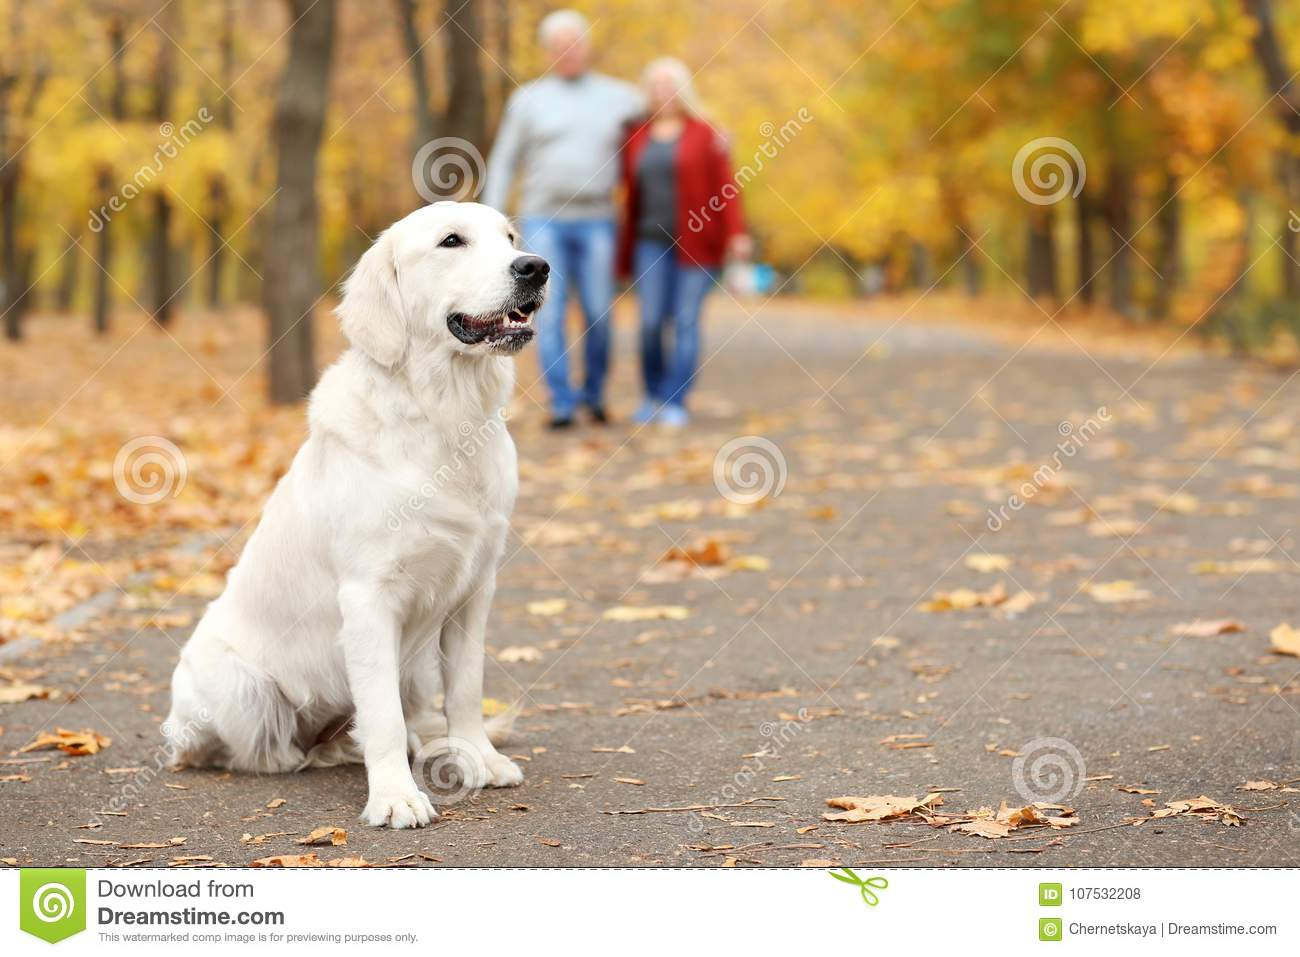 Cute dog on pathway in park with blurred couple